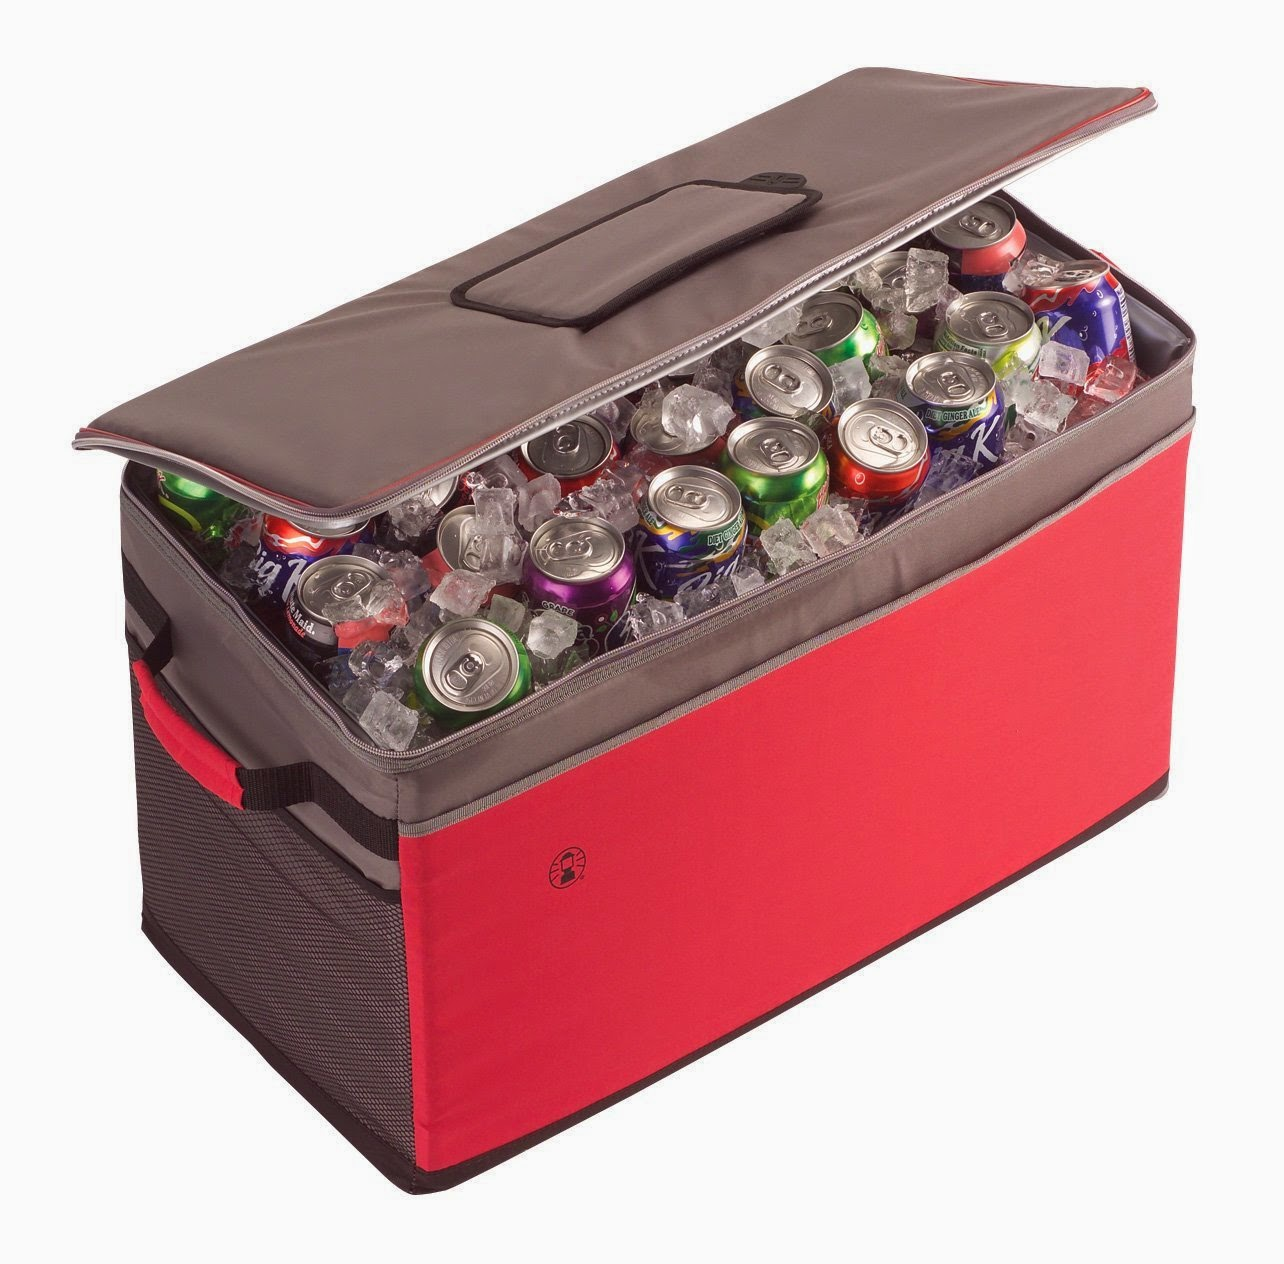 coleman color may vary large cooler with wheels